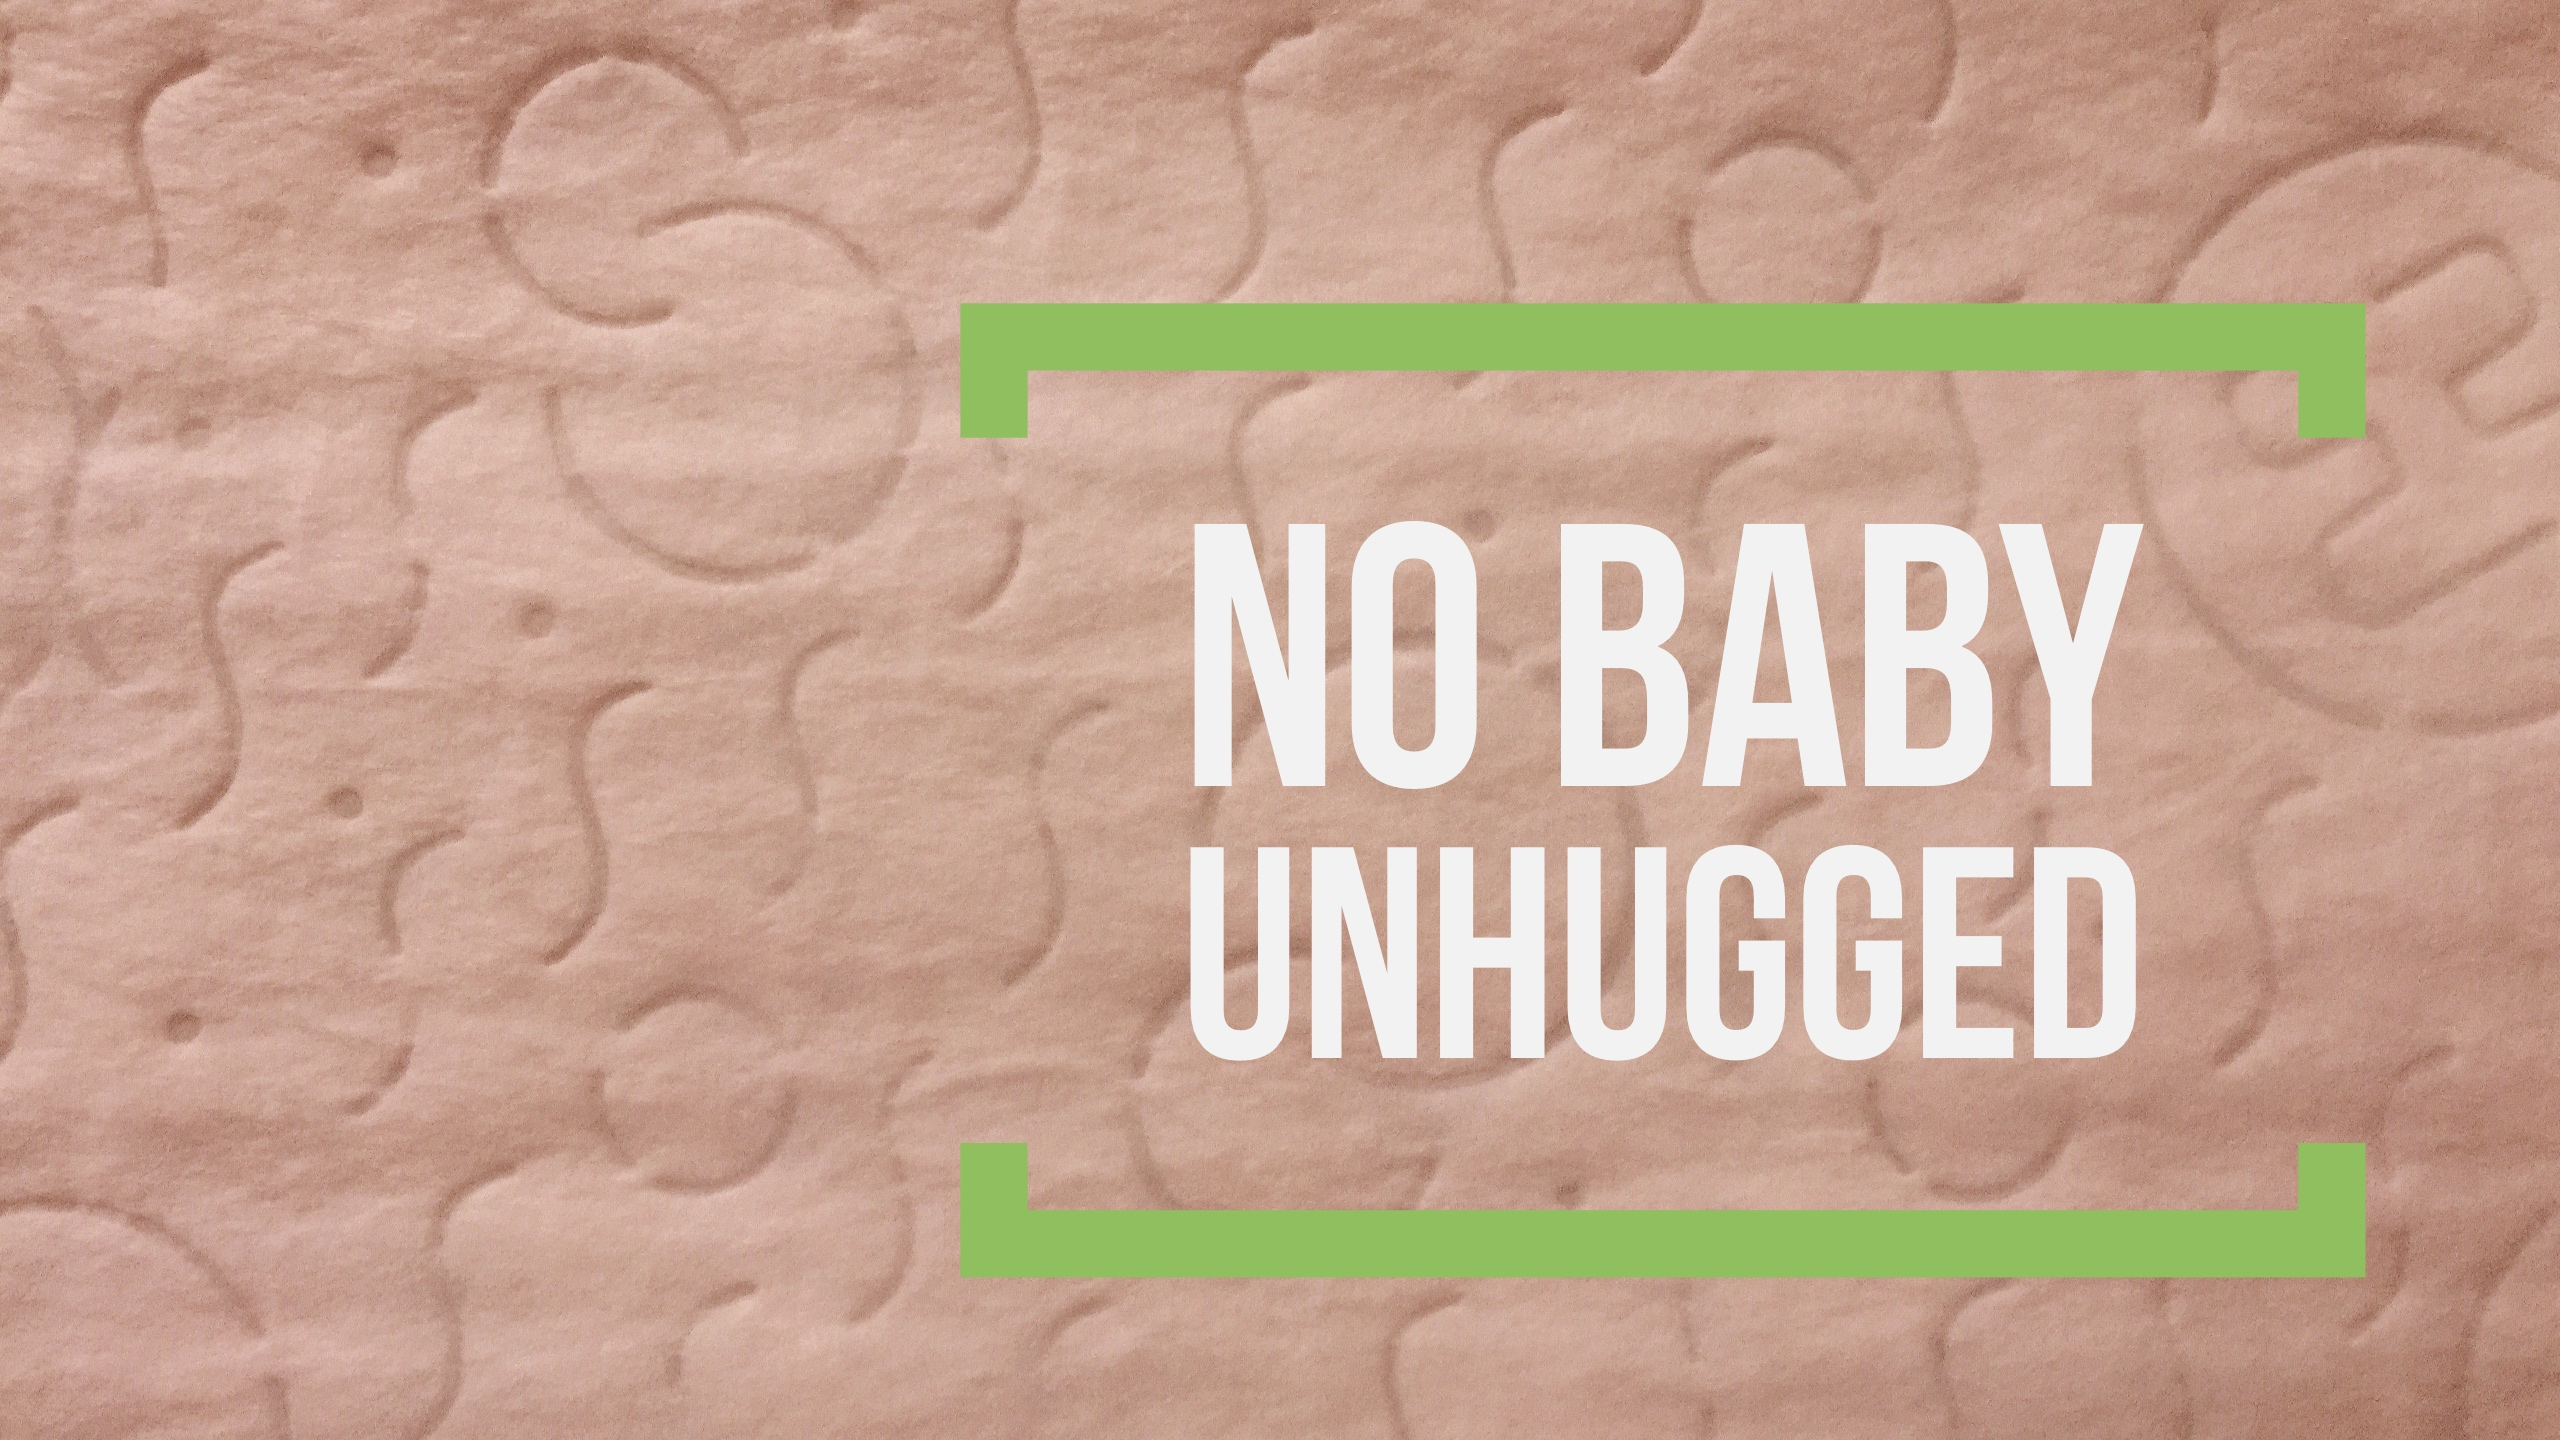 Best Ways To Donate Diapers With Huggies Rewards And No Baby Unhugged © www.roastedbeanz.com #NoBabyUnhuggedCB [AD] #CollectiveBias #shop